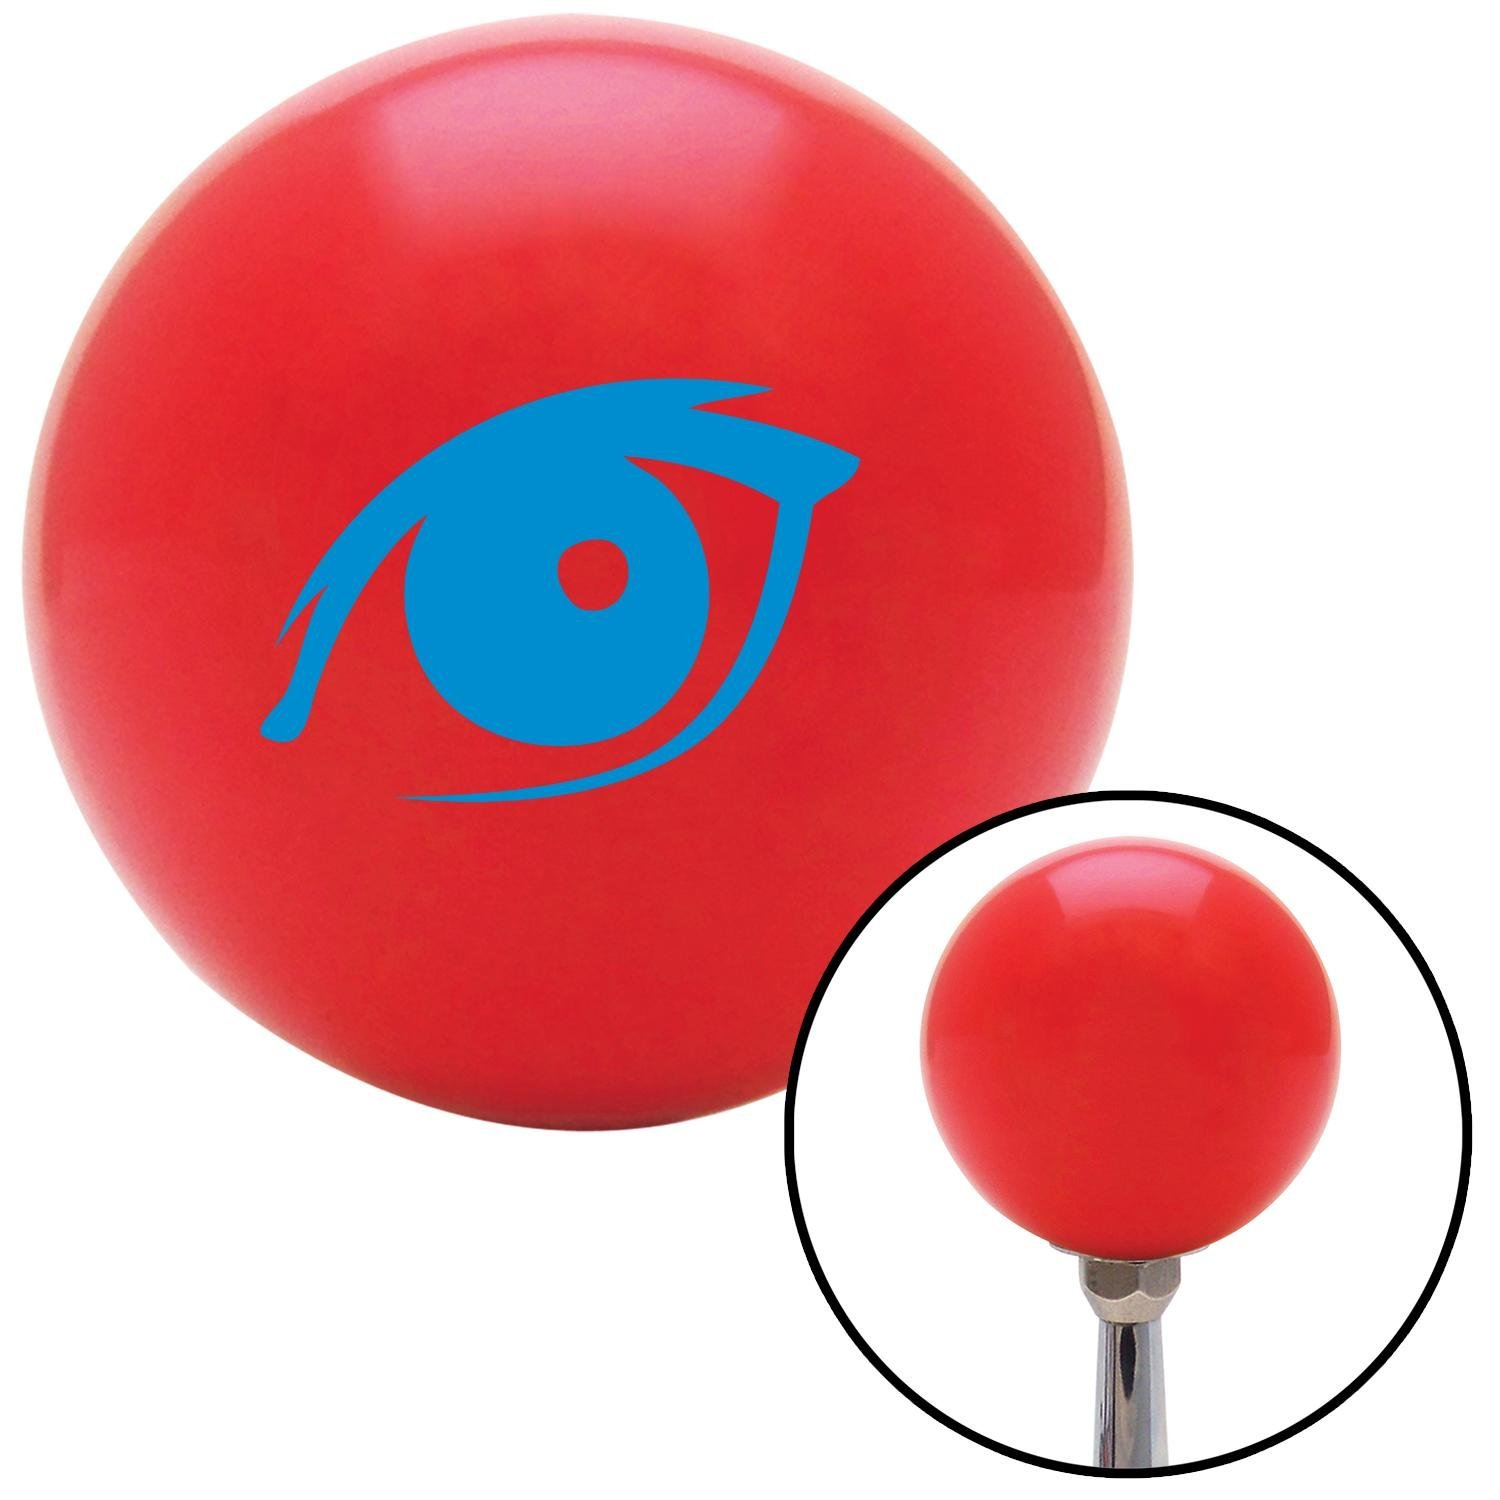 Blue One Eye American Shifter 95052 Red Shift Knob with M16 x 1.5 Insert